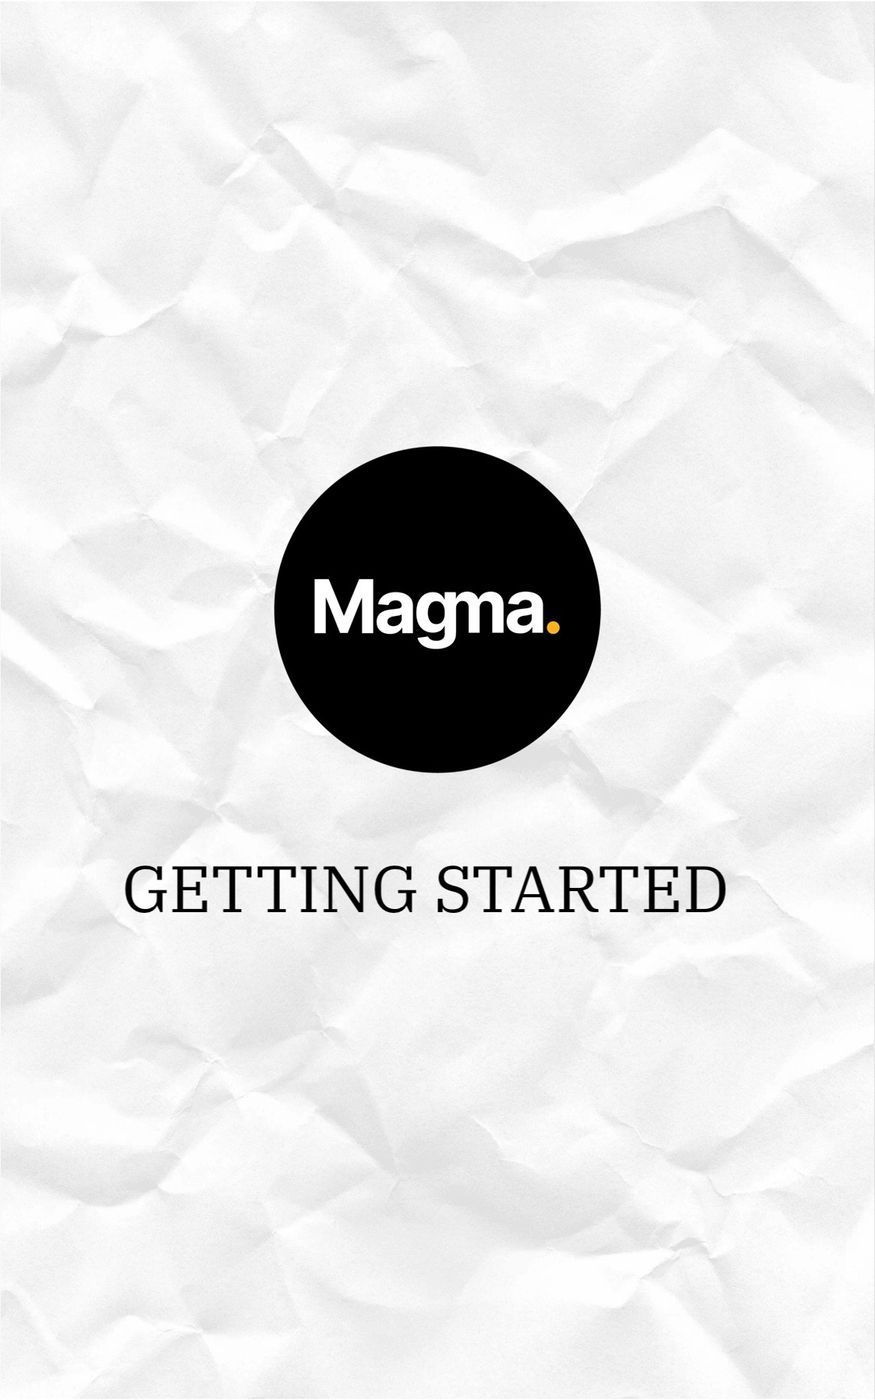 Easy guide to getting started with Magma!